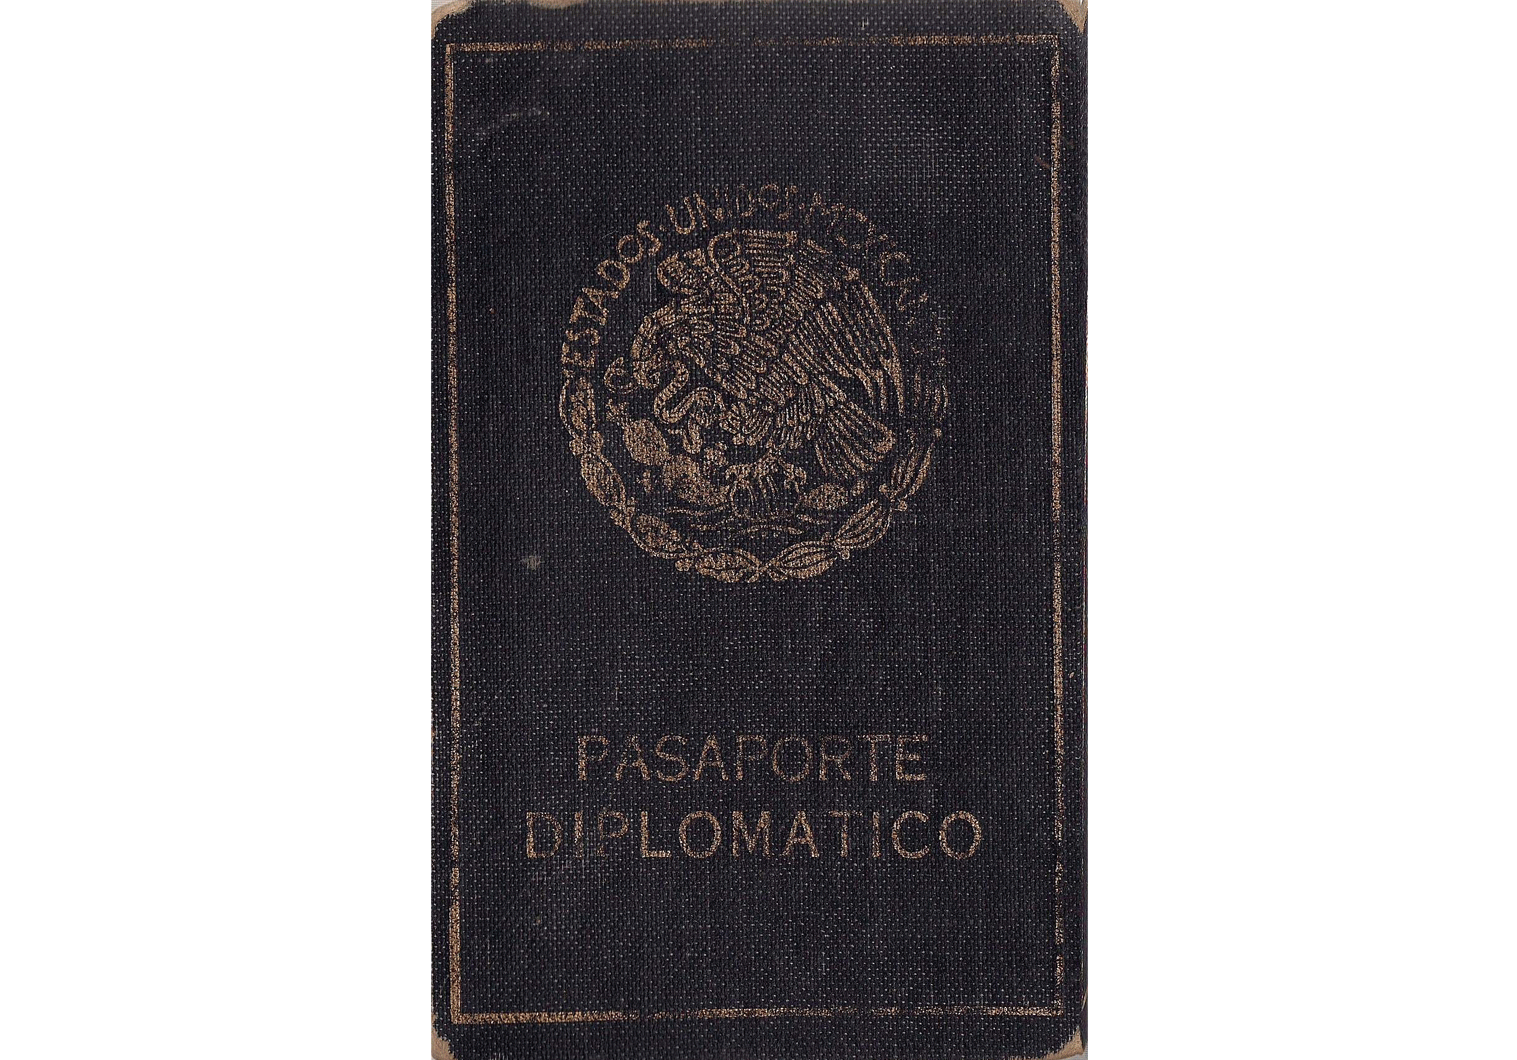 Mexican diplomatic passport